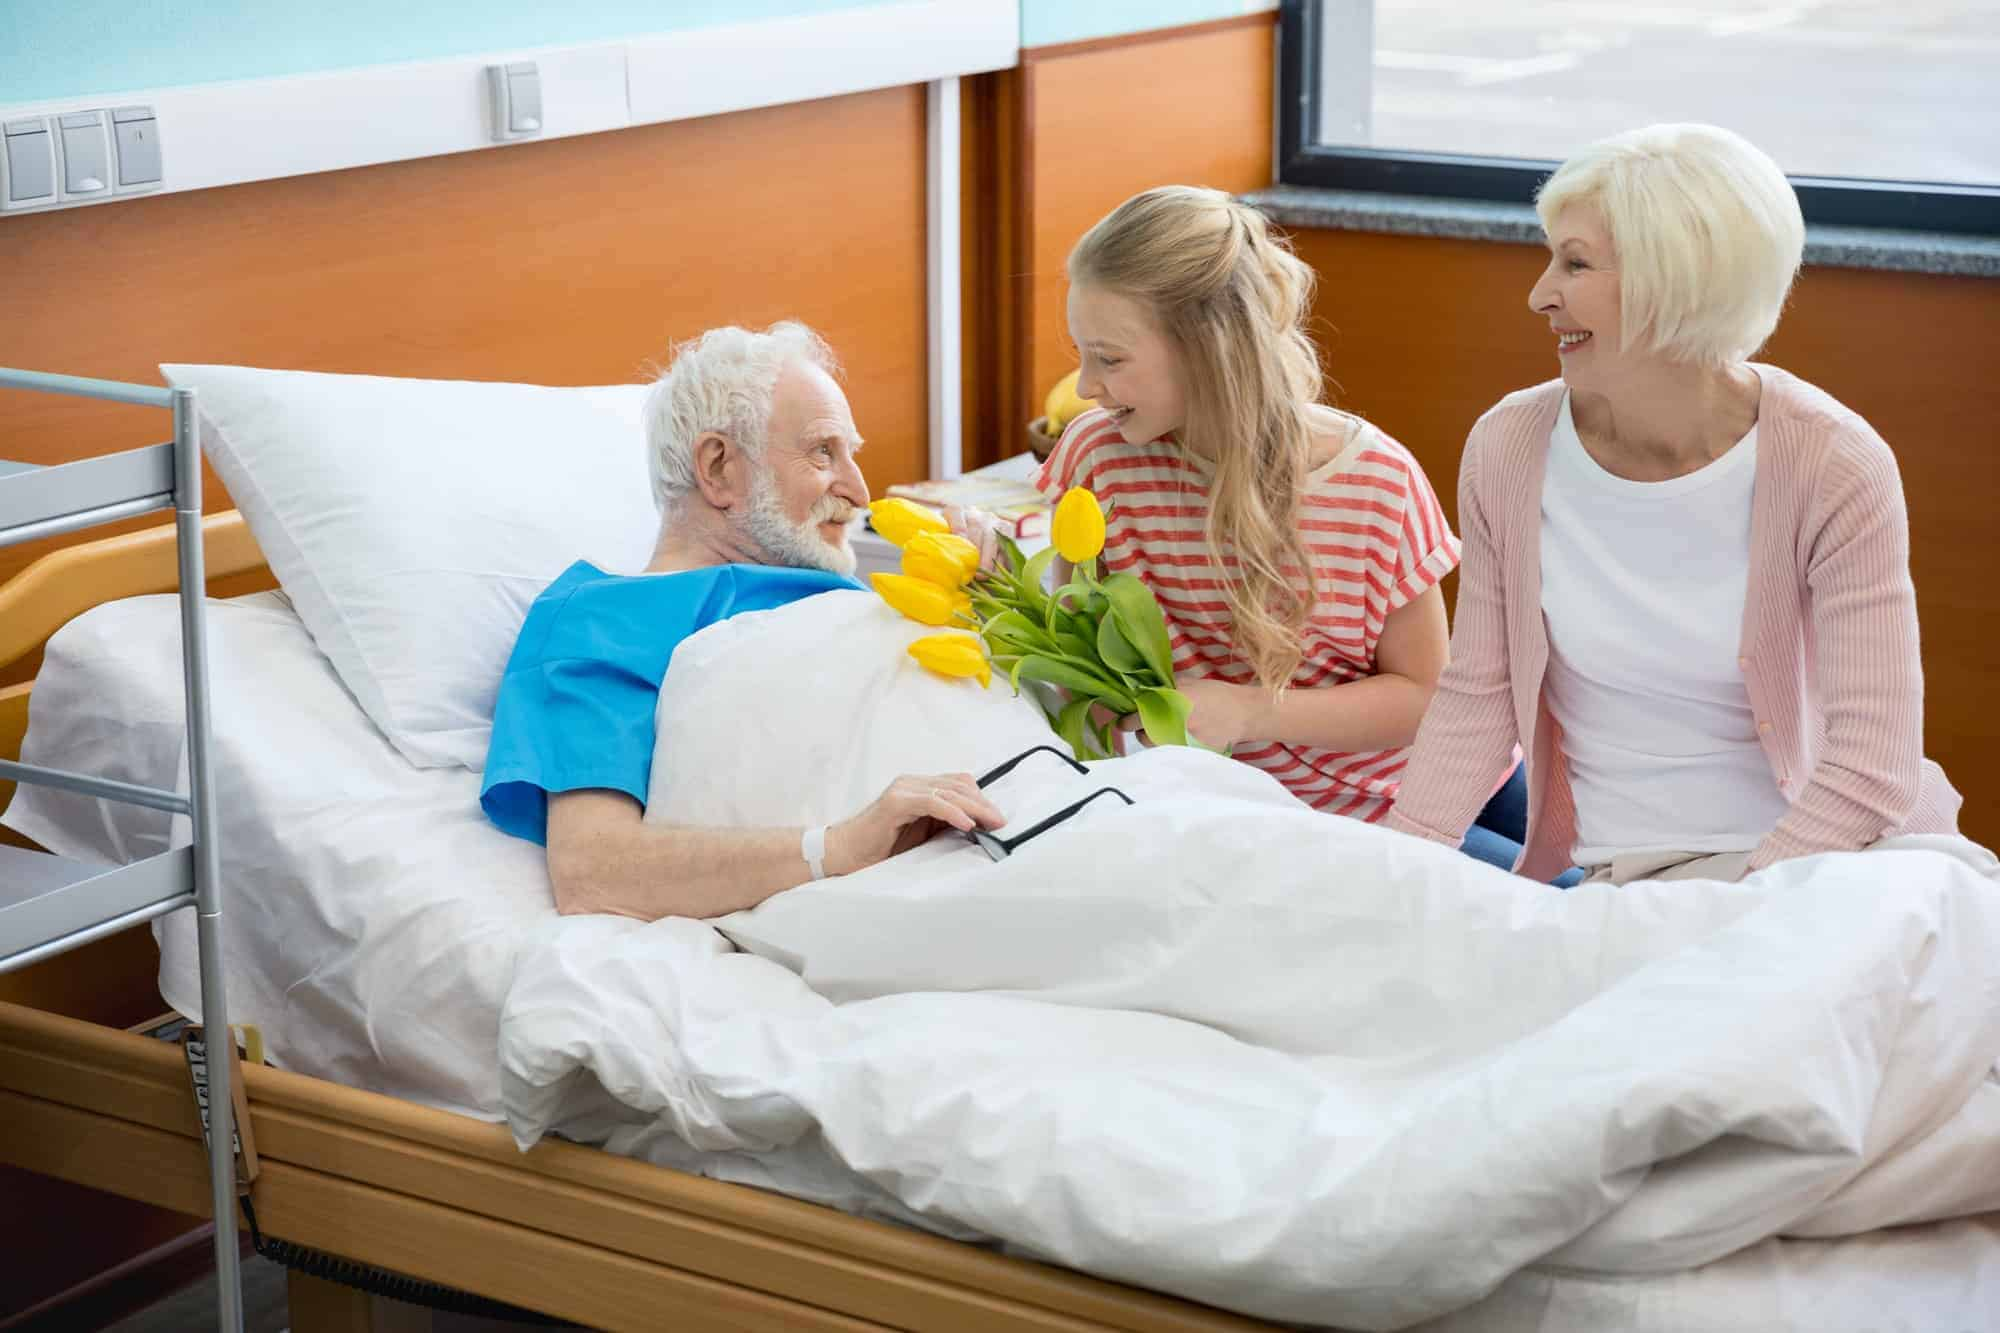 grandmother and granddaughter with tulip flowers visiting patient in hospital. male patient in